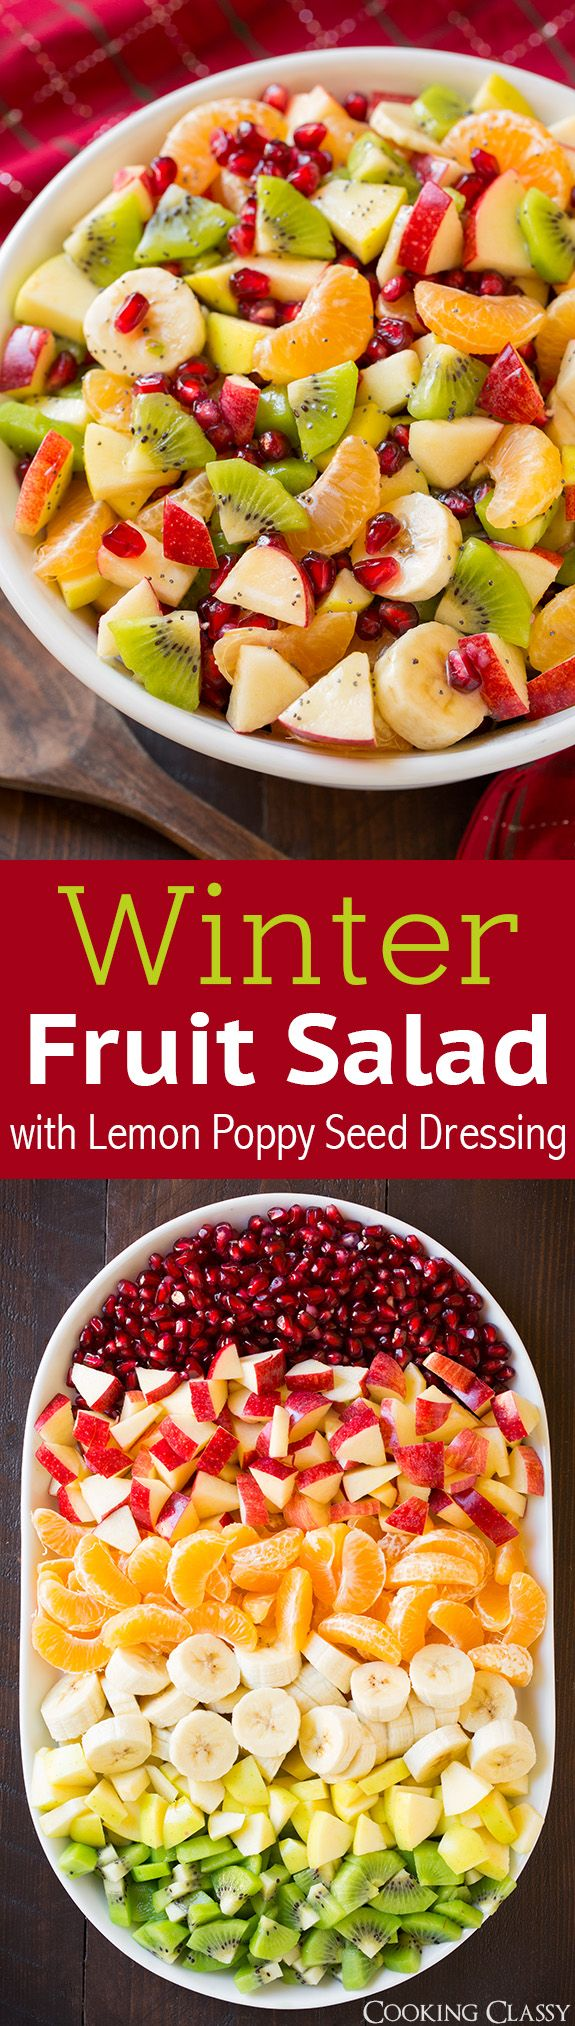 Winter Fruit Salad With Lemon Poppy Seed Dressing Cooking Classy Winter Fruit Salad Healthy Delicious Salads